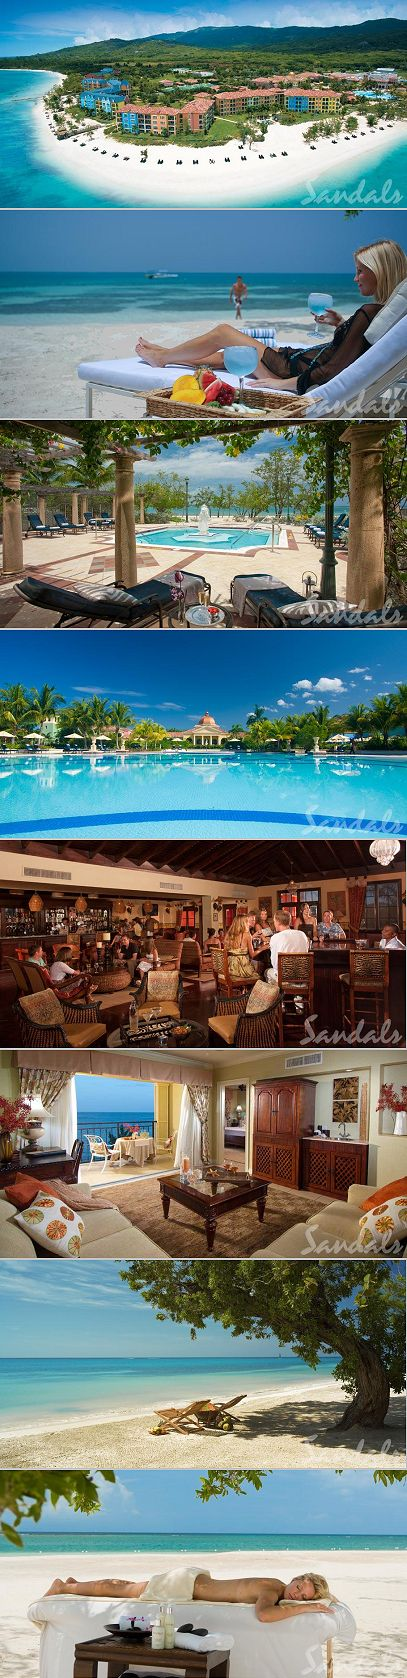 The Top Caribbean All Inclusive Resorts for Honeymoons: Sandals Whitehouse in Jamaica Review